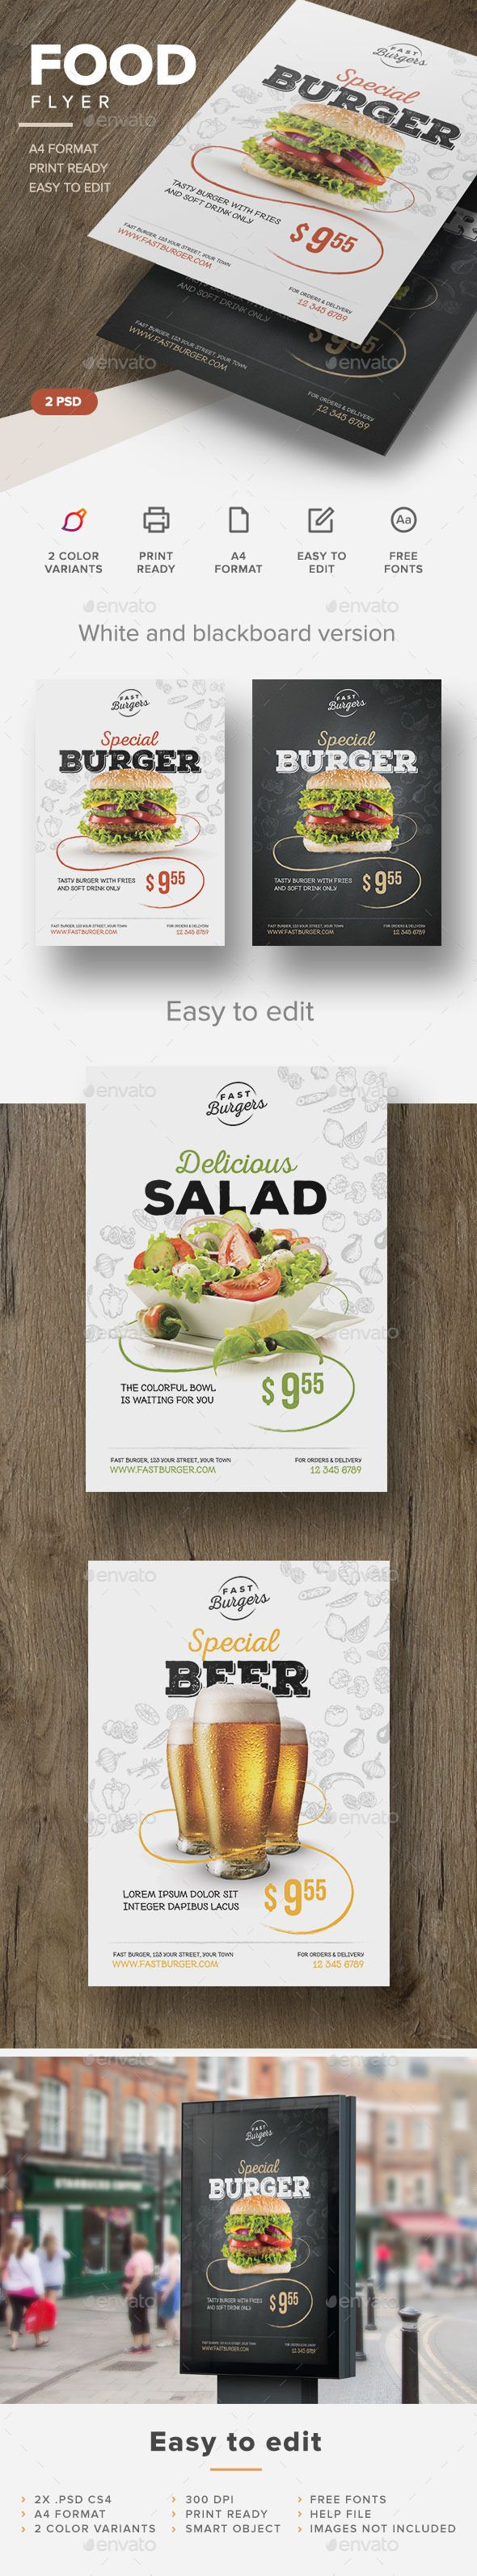 best ideas about flyer layout graphic design food flyer